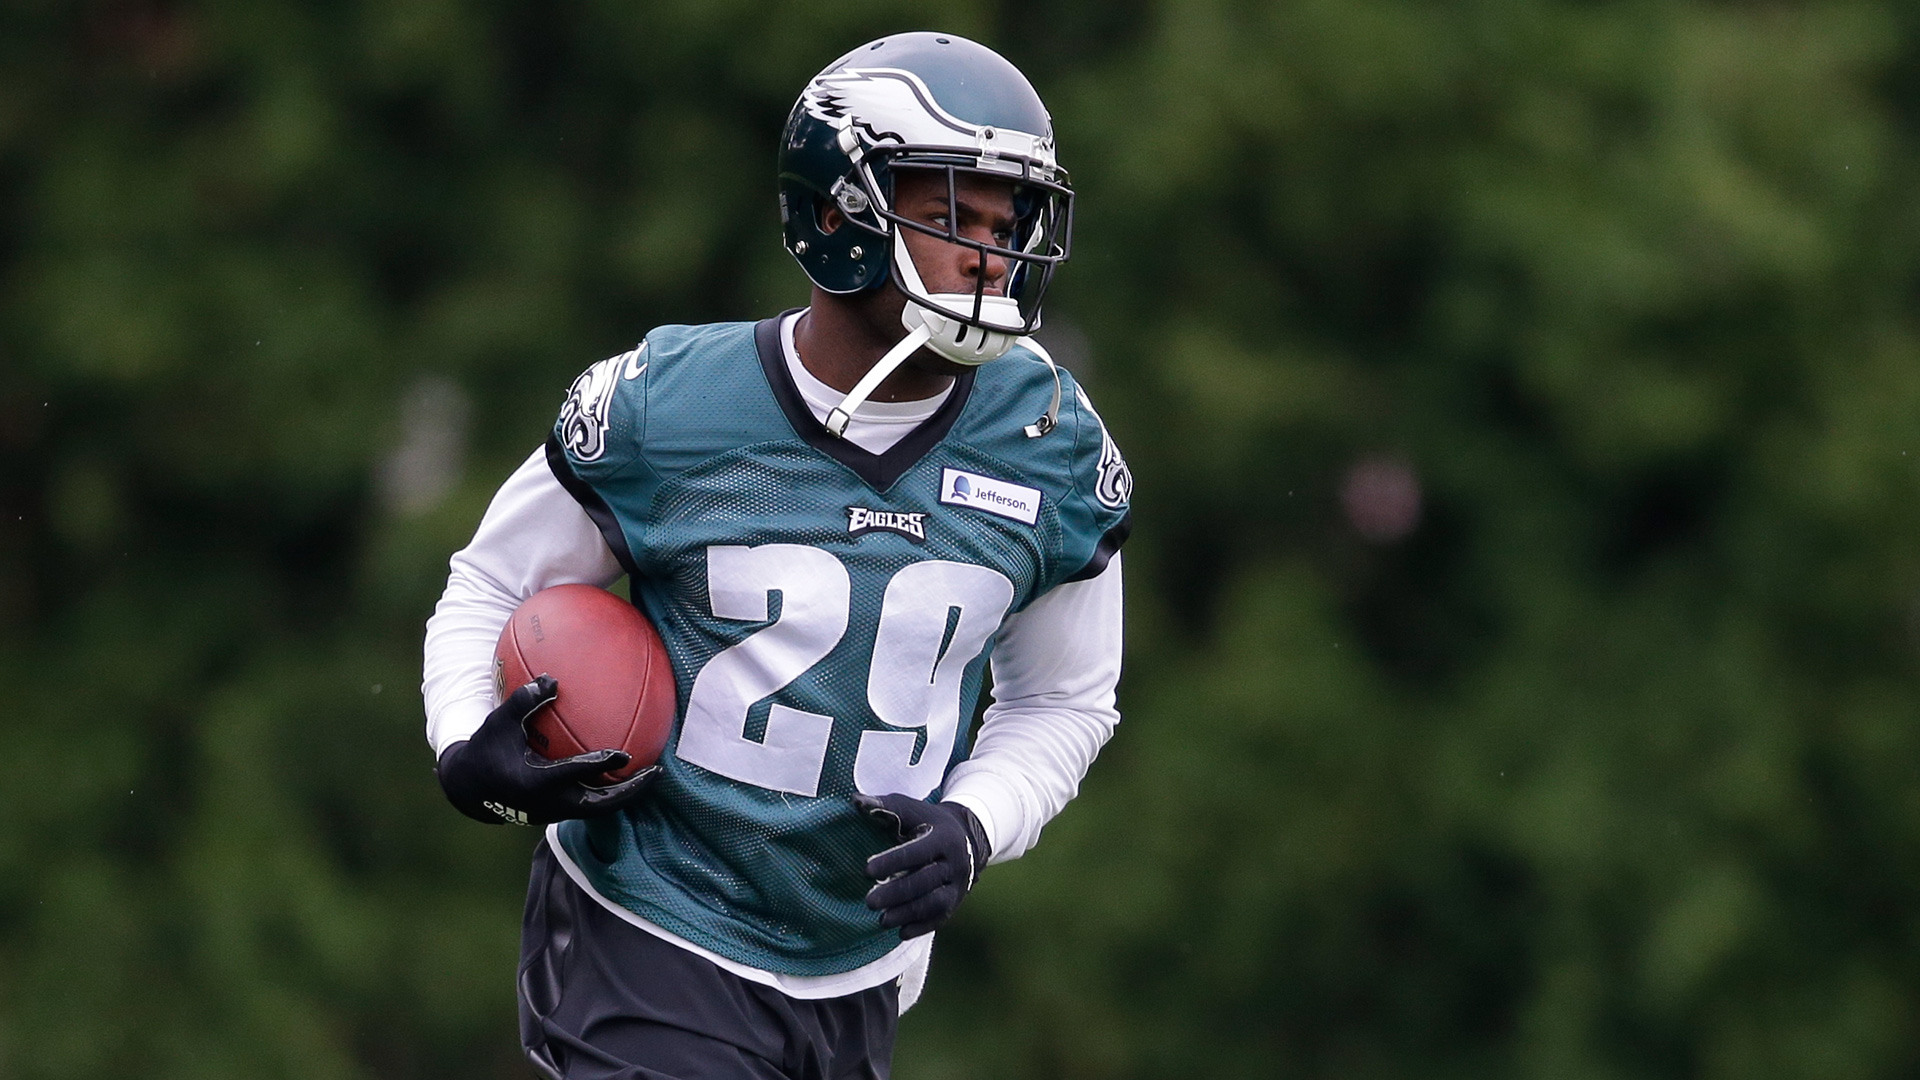 DeMarco Murray leaves little certainty on fantasy draft boards